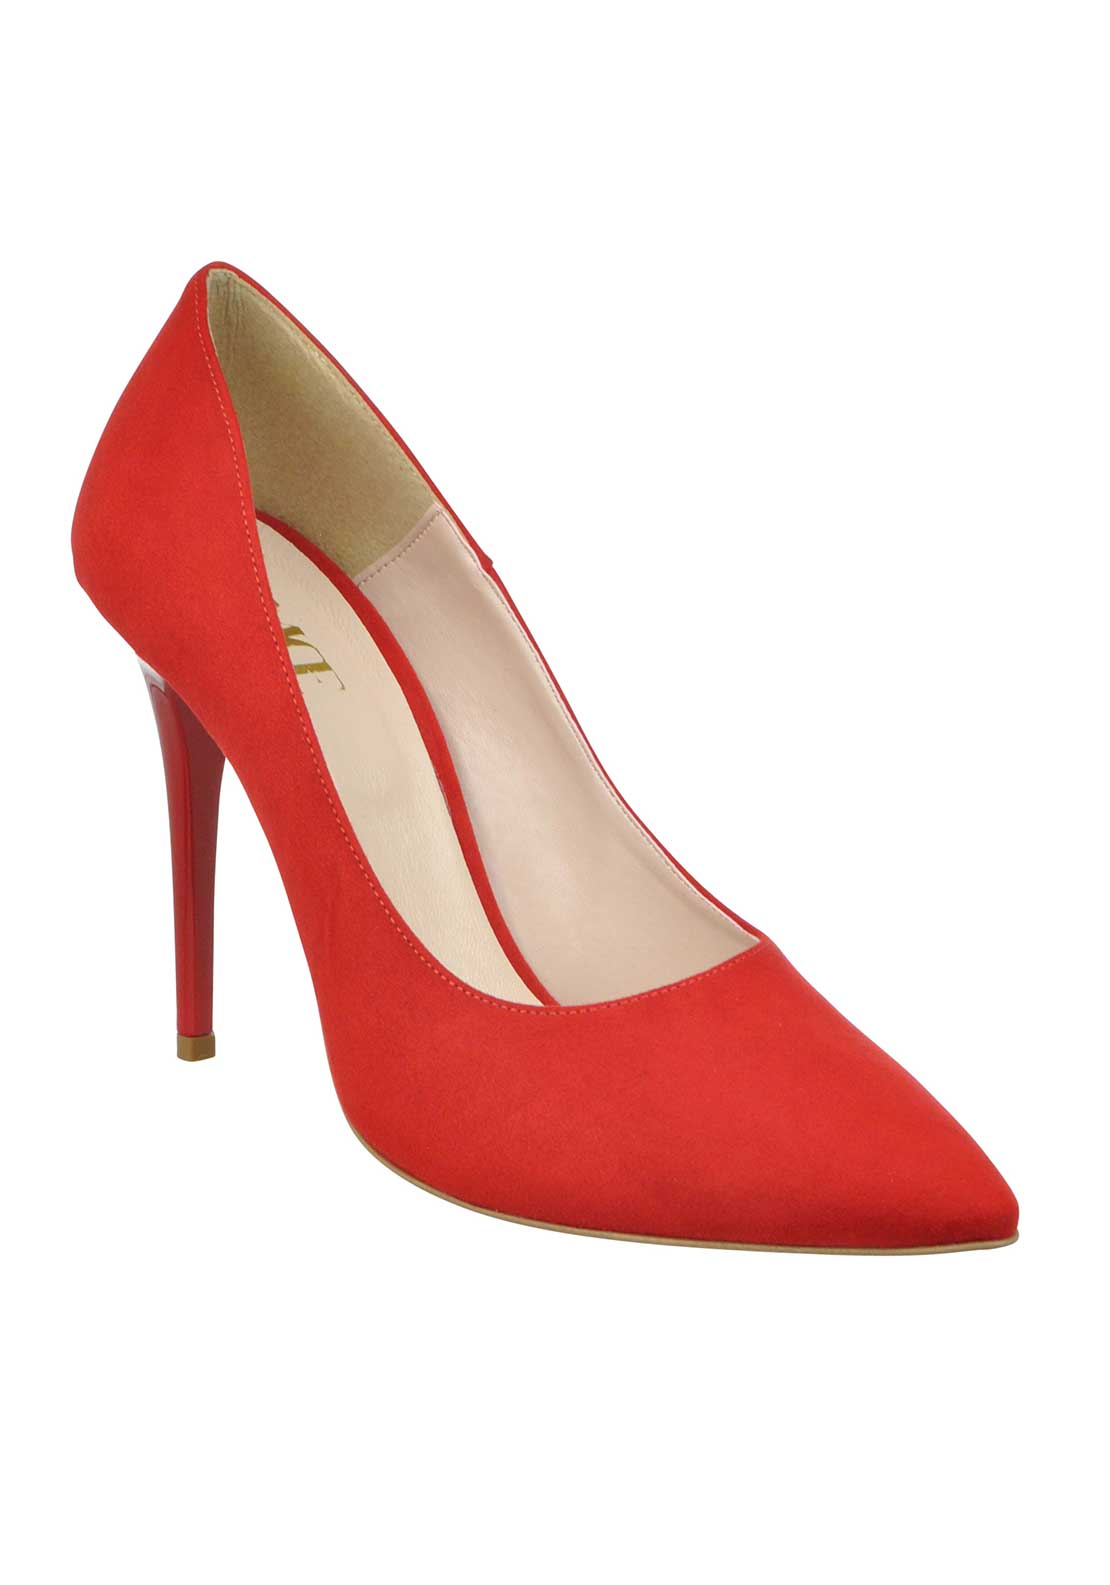 McElhinney's Faux Suede Pointed Toe Heeled Shoes, Red